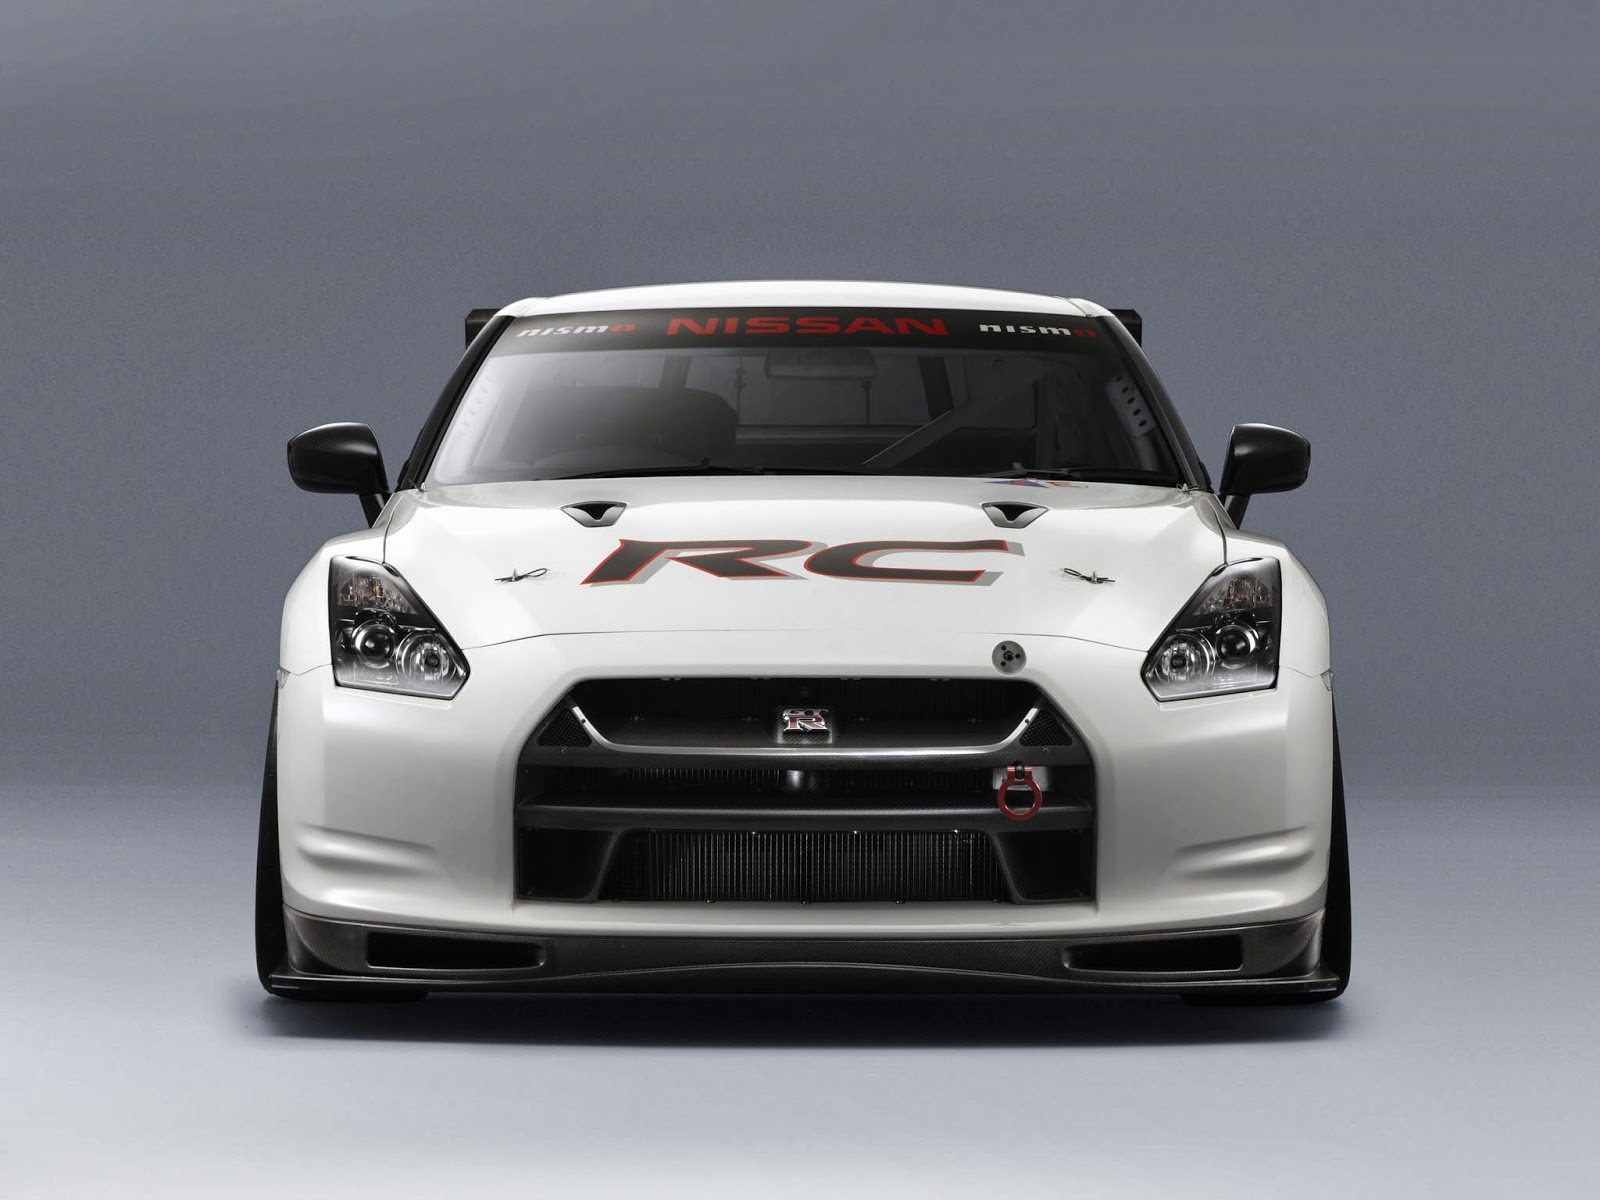 nissan nismo gt r rc prices photos just welcome to automotive. Black Bedroom Furniture Sets. Home Design Ideas